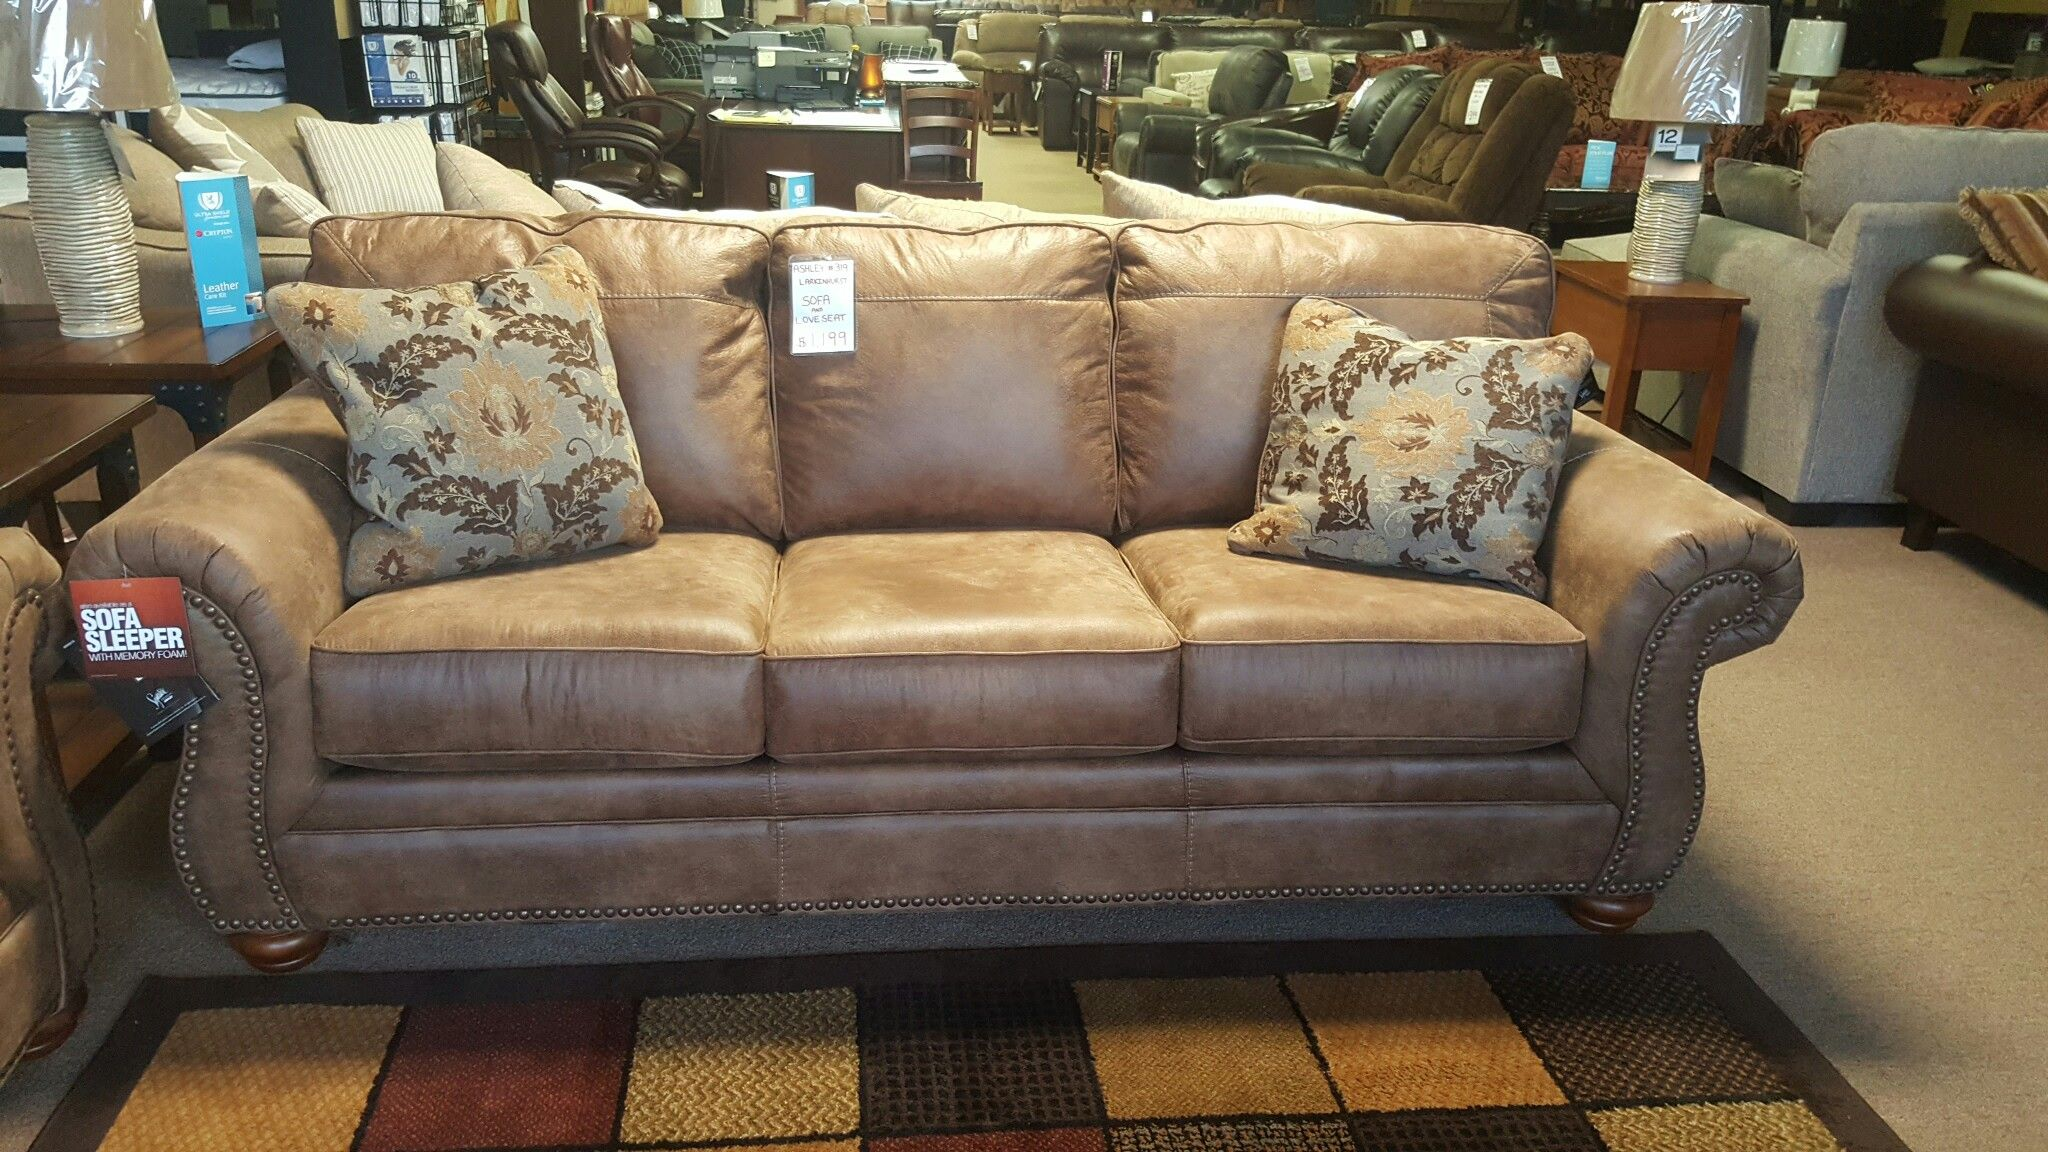 Larkinhurst Earth Sofa by Ashley Furniture is only $14 at Quality